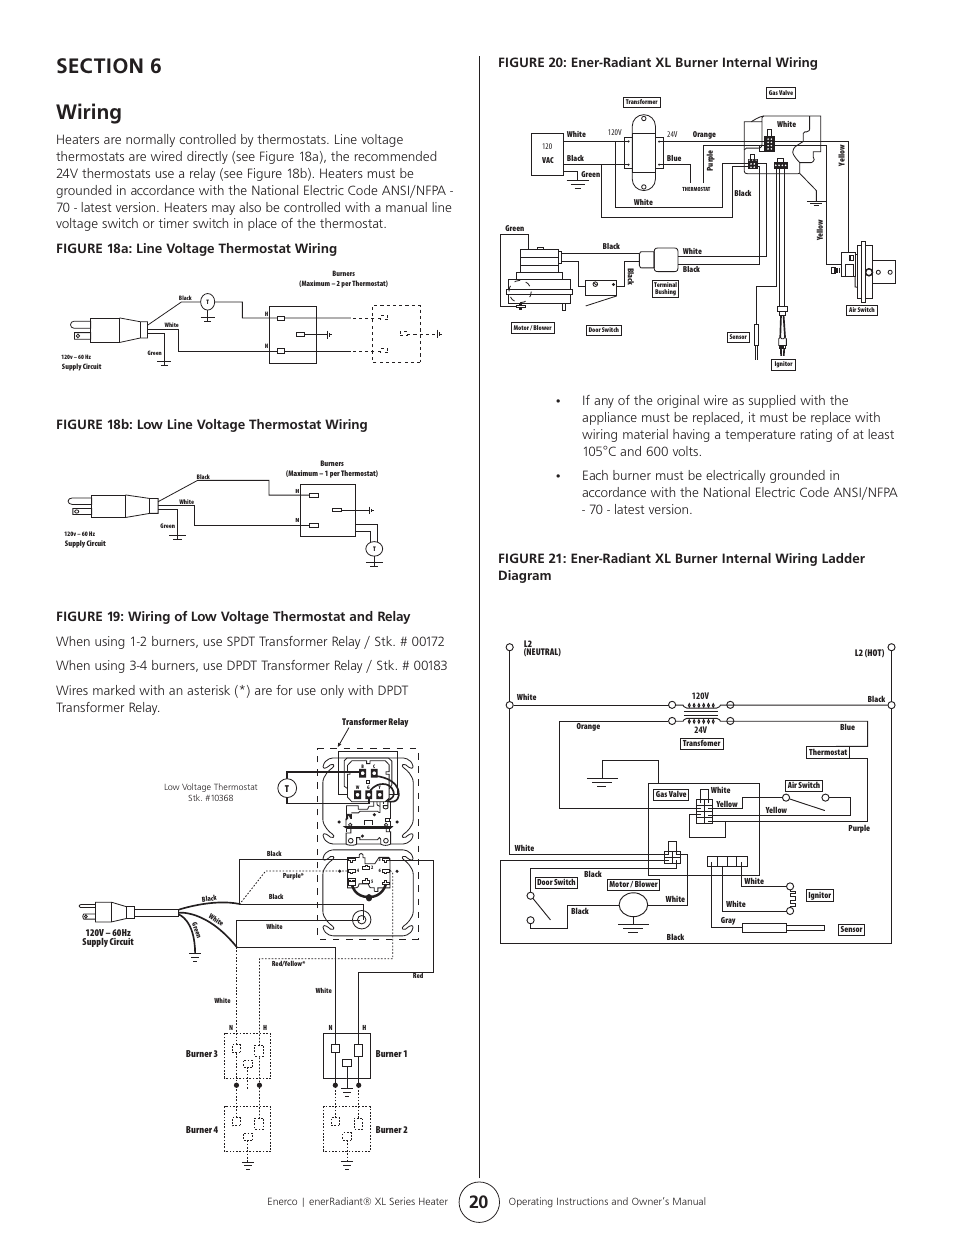 hight resolution of figure 18b low line voltage thermostat wiring figure 20 ener radiant xl